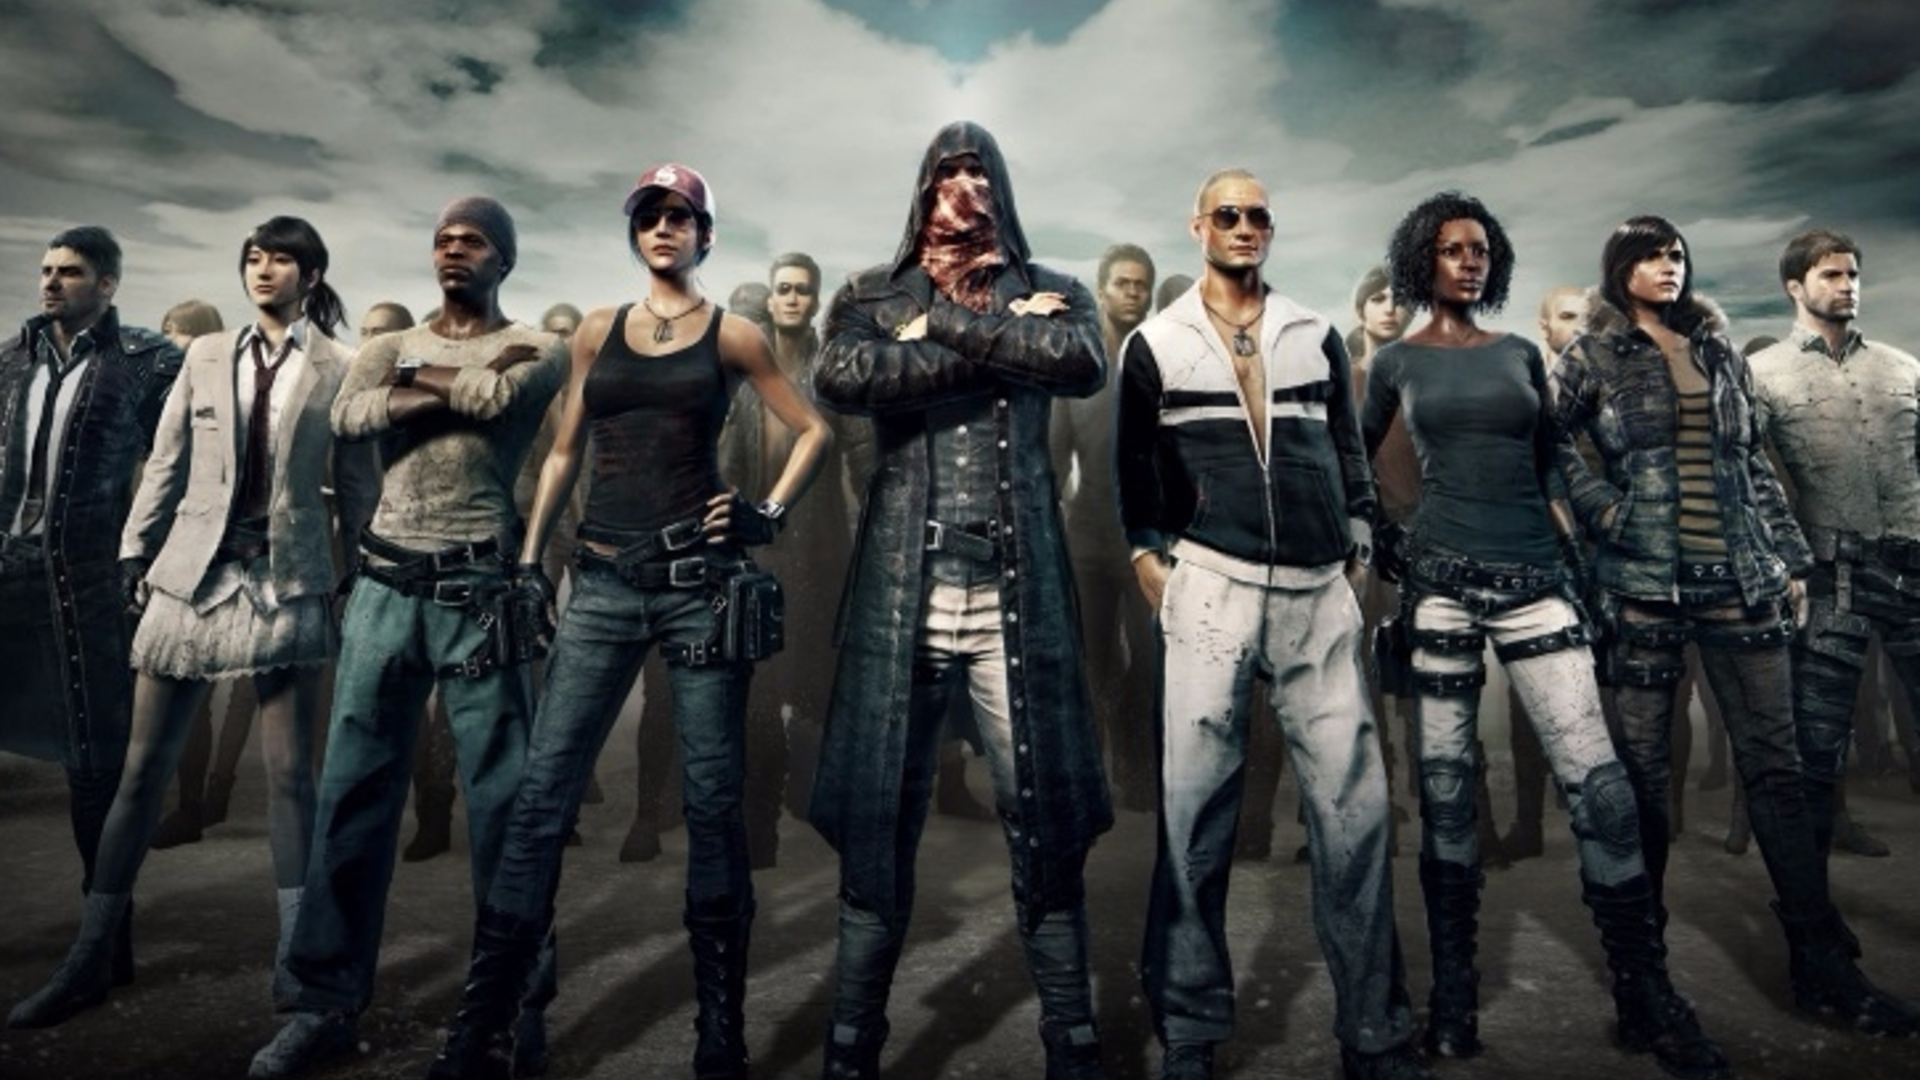 PlayerUnknown's Battlegrounds players team up to try and break the game